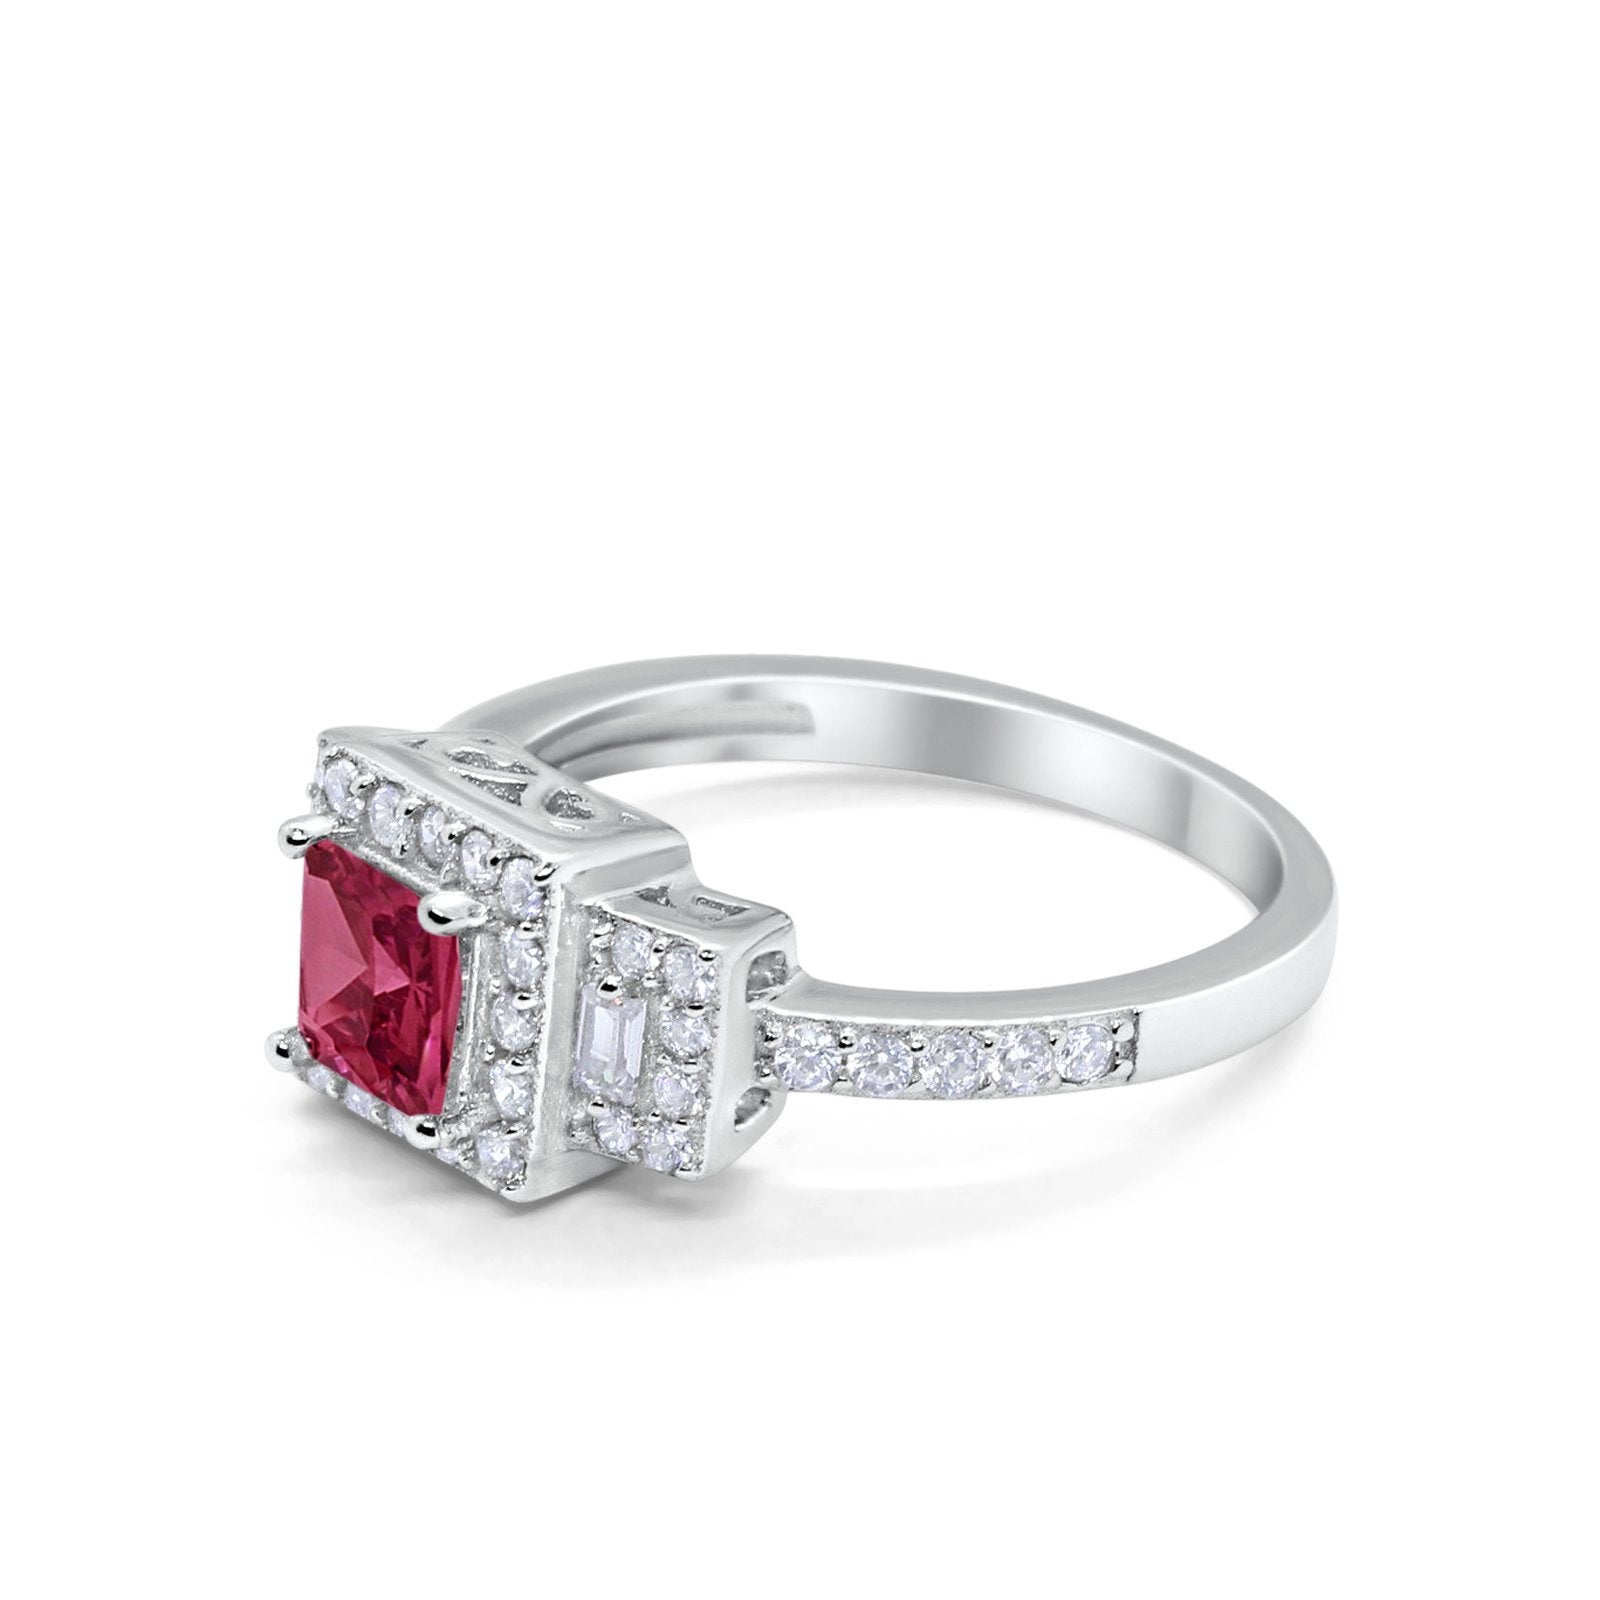 Halo Wedding Engagement Ring Round Baguette Simulated Ruby CZ 925 Sterling Silver